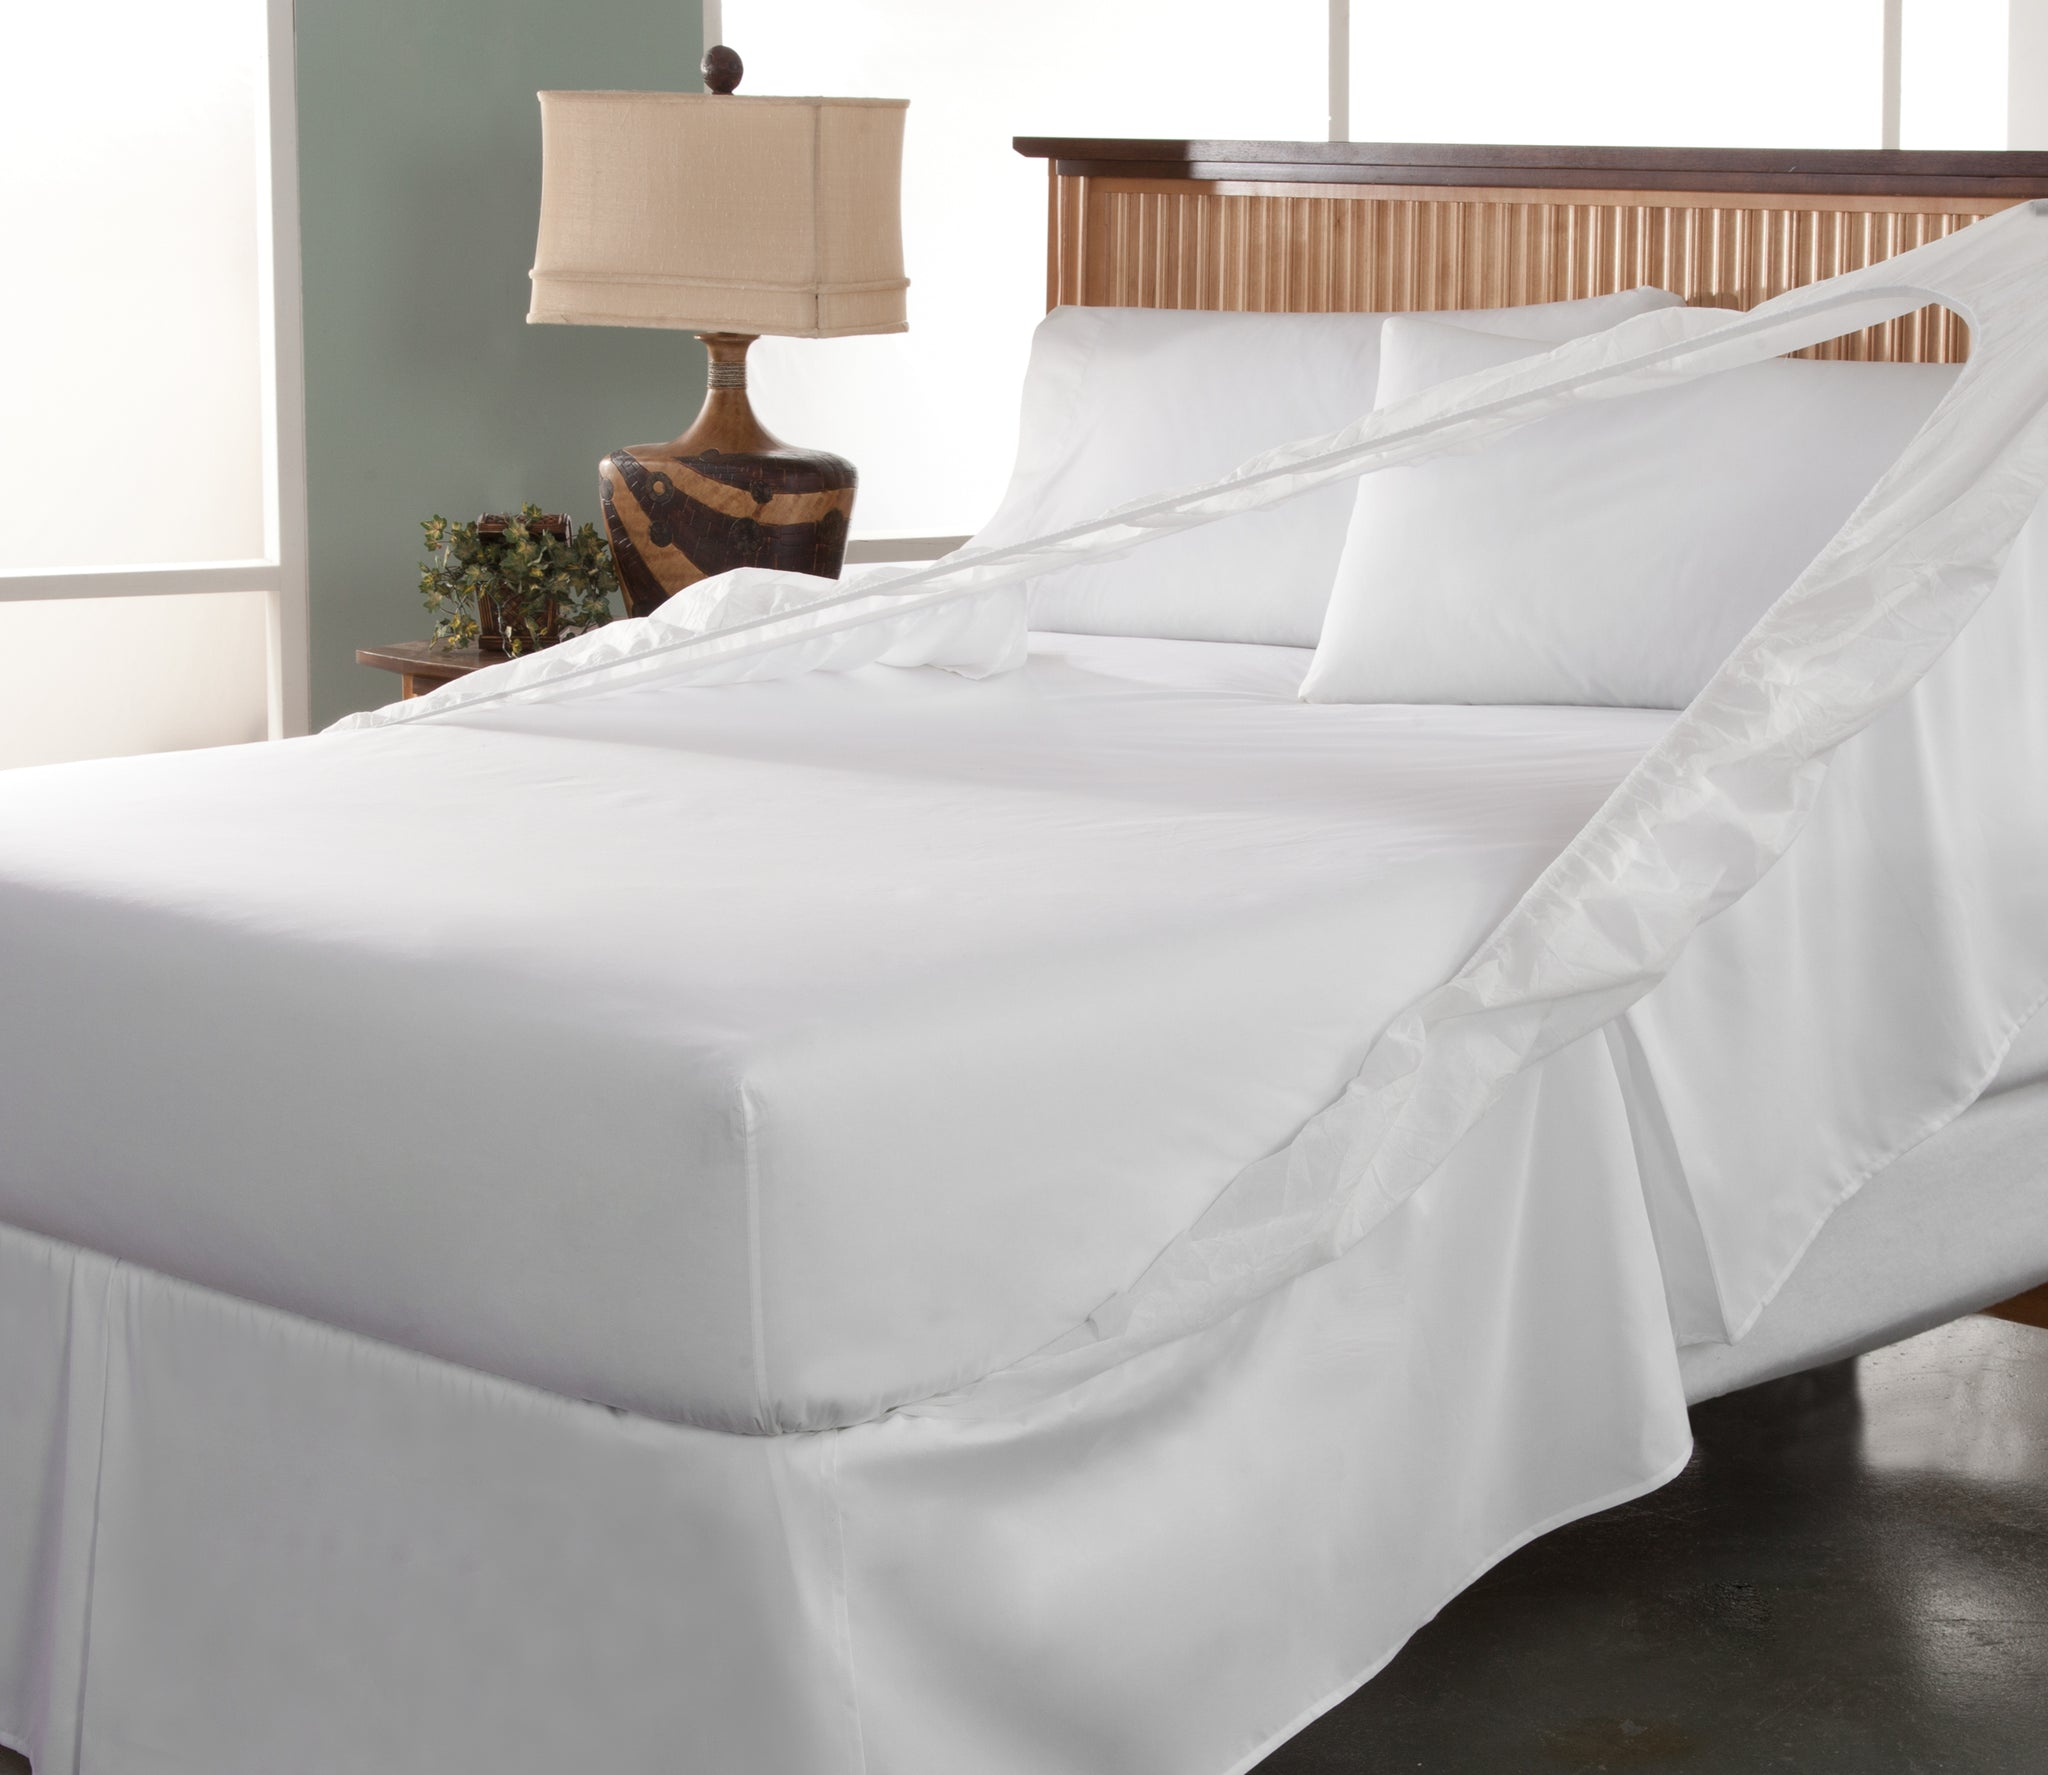 Perfect Fit Bedskirt and Box Spring Protector